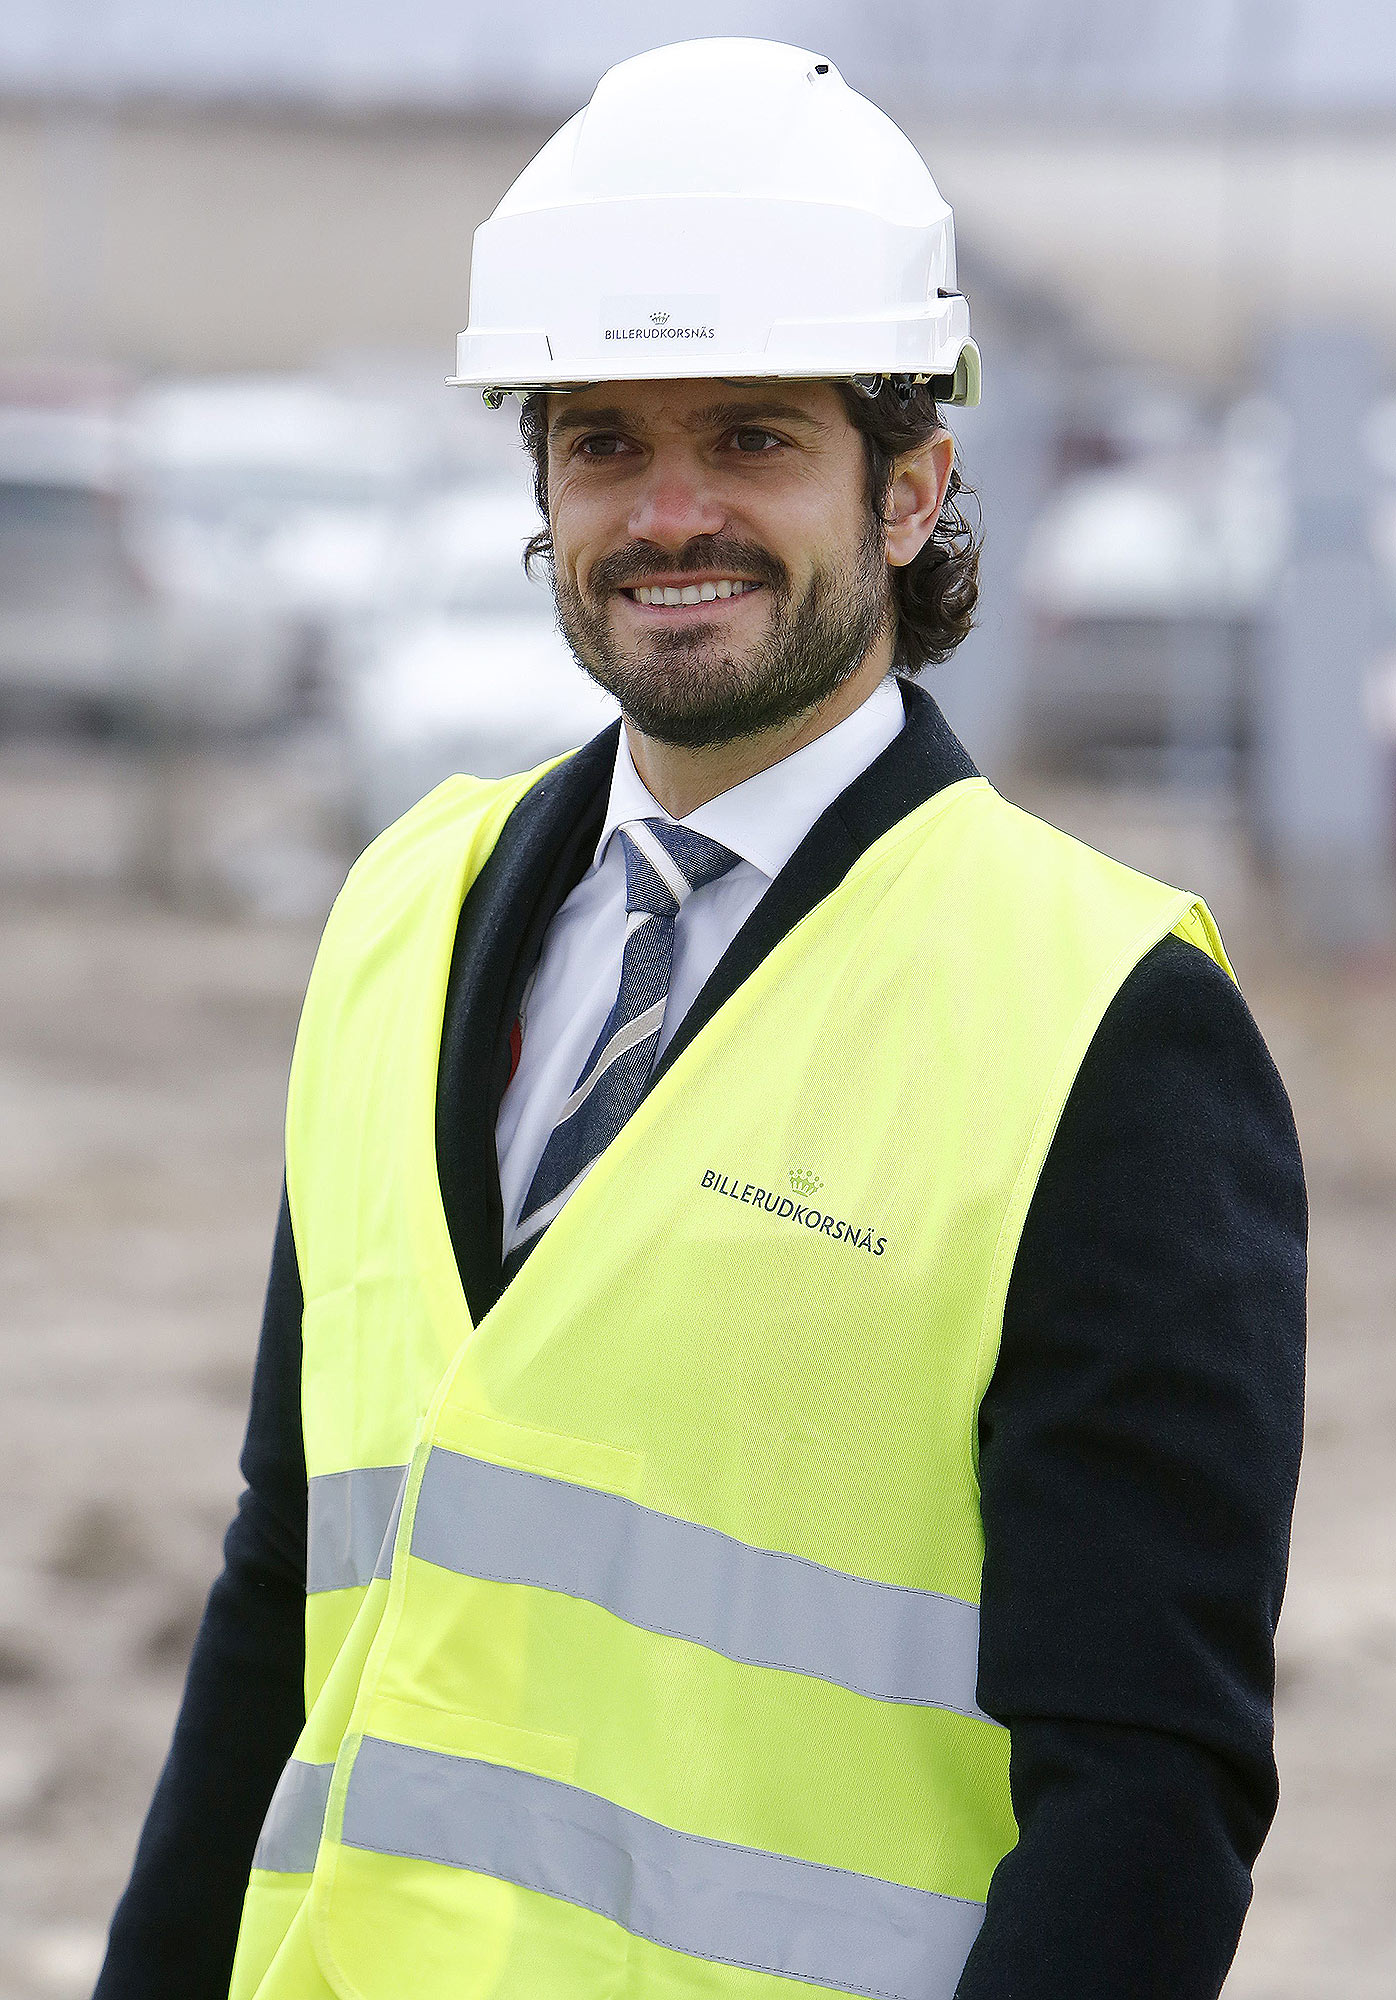 Prince Carl Philip visits BillerudKorsnas factory, Grums, Sweden - 09 Feb 2017